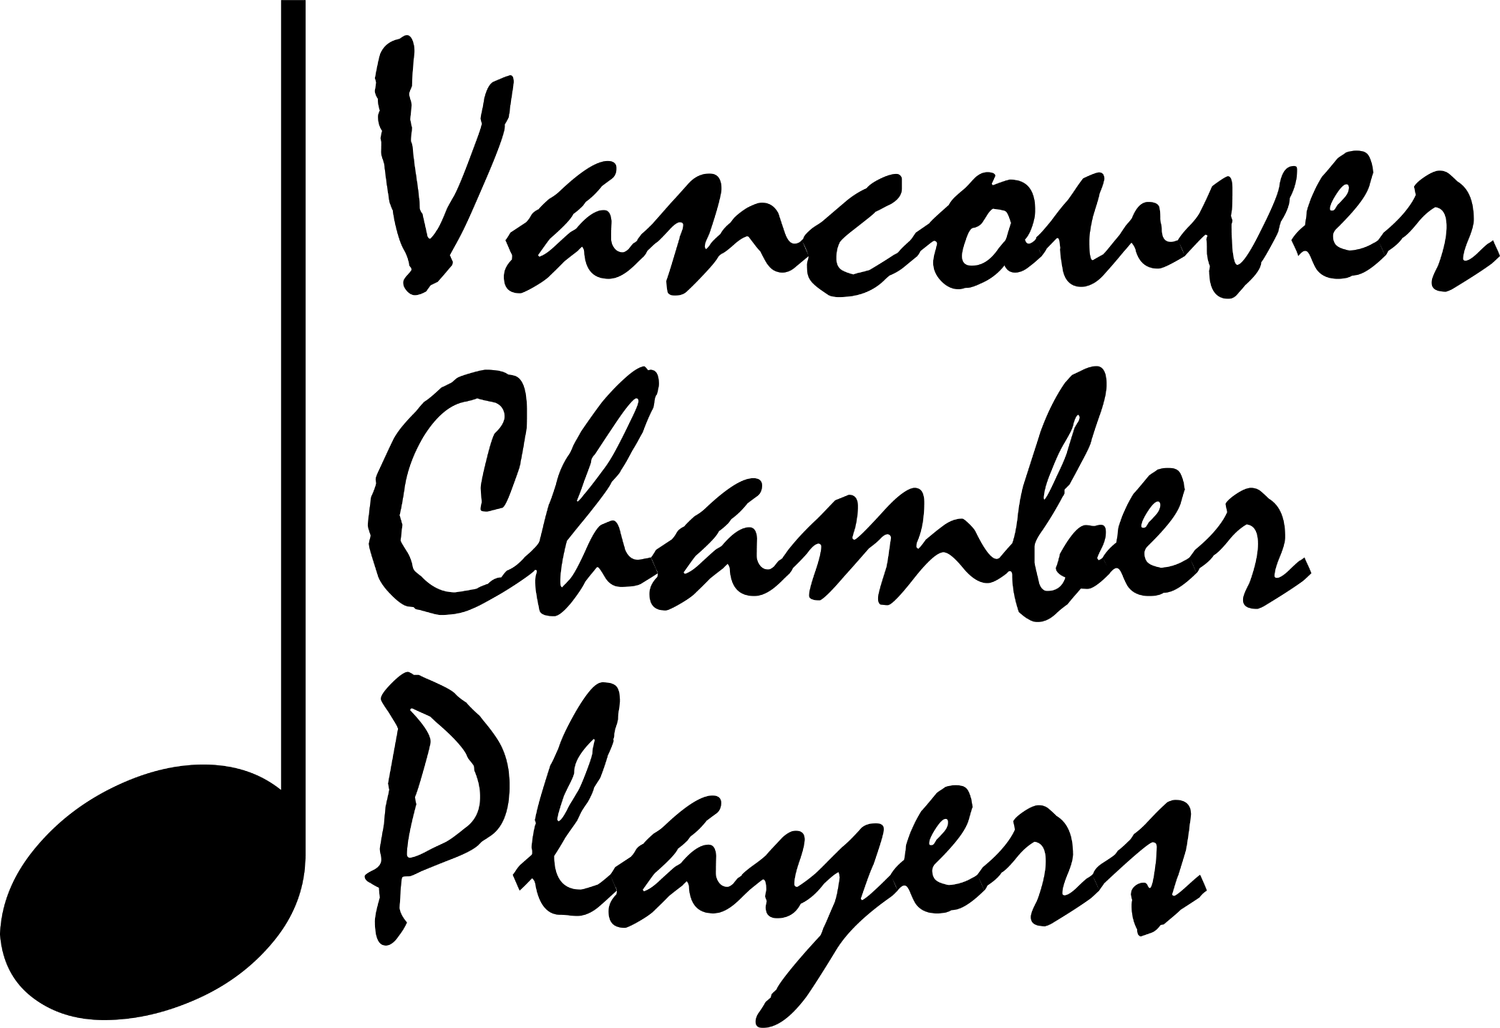 Vancouver Chamber Players